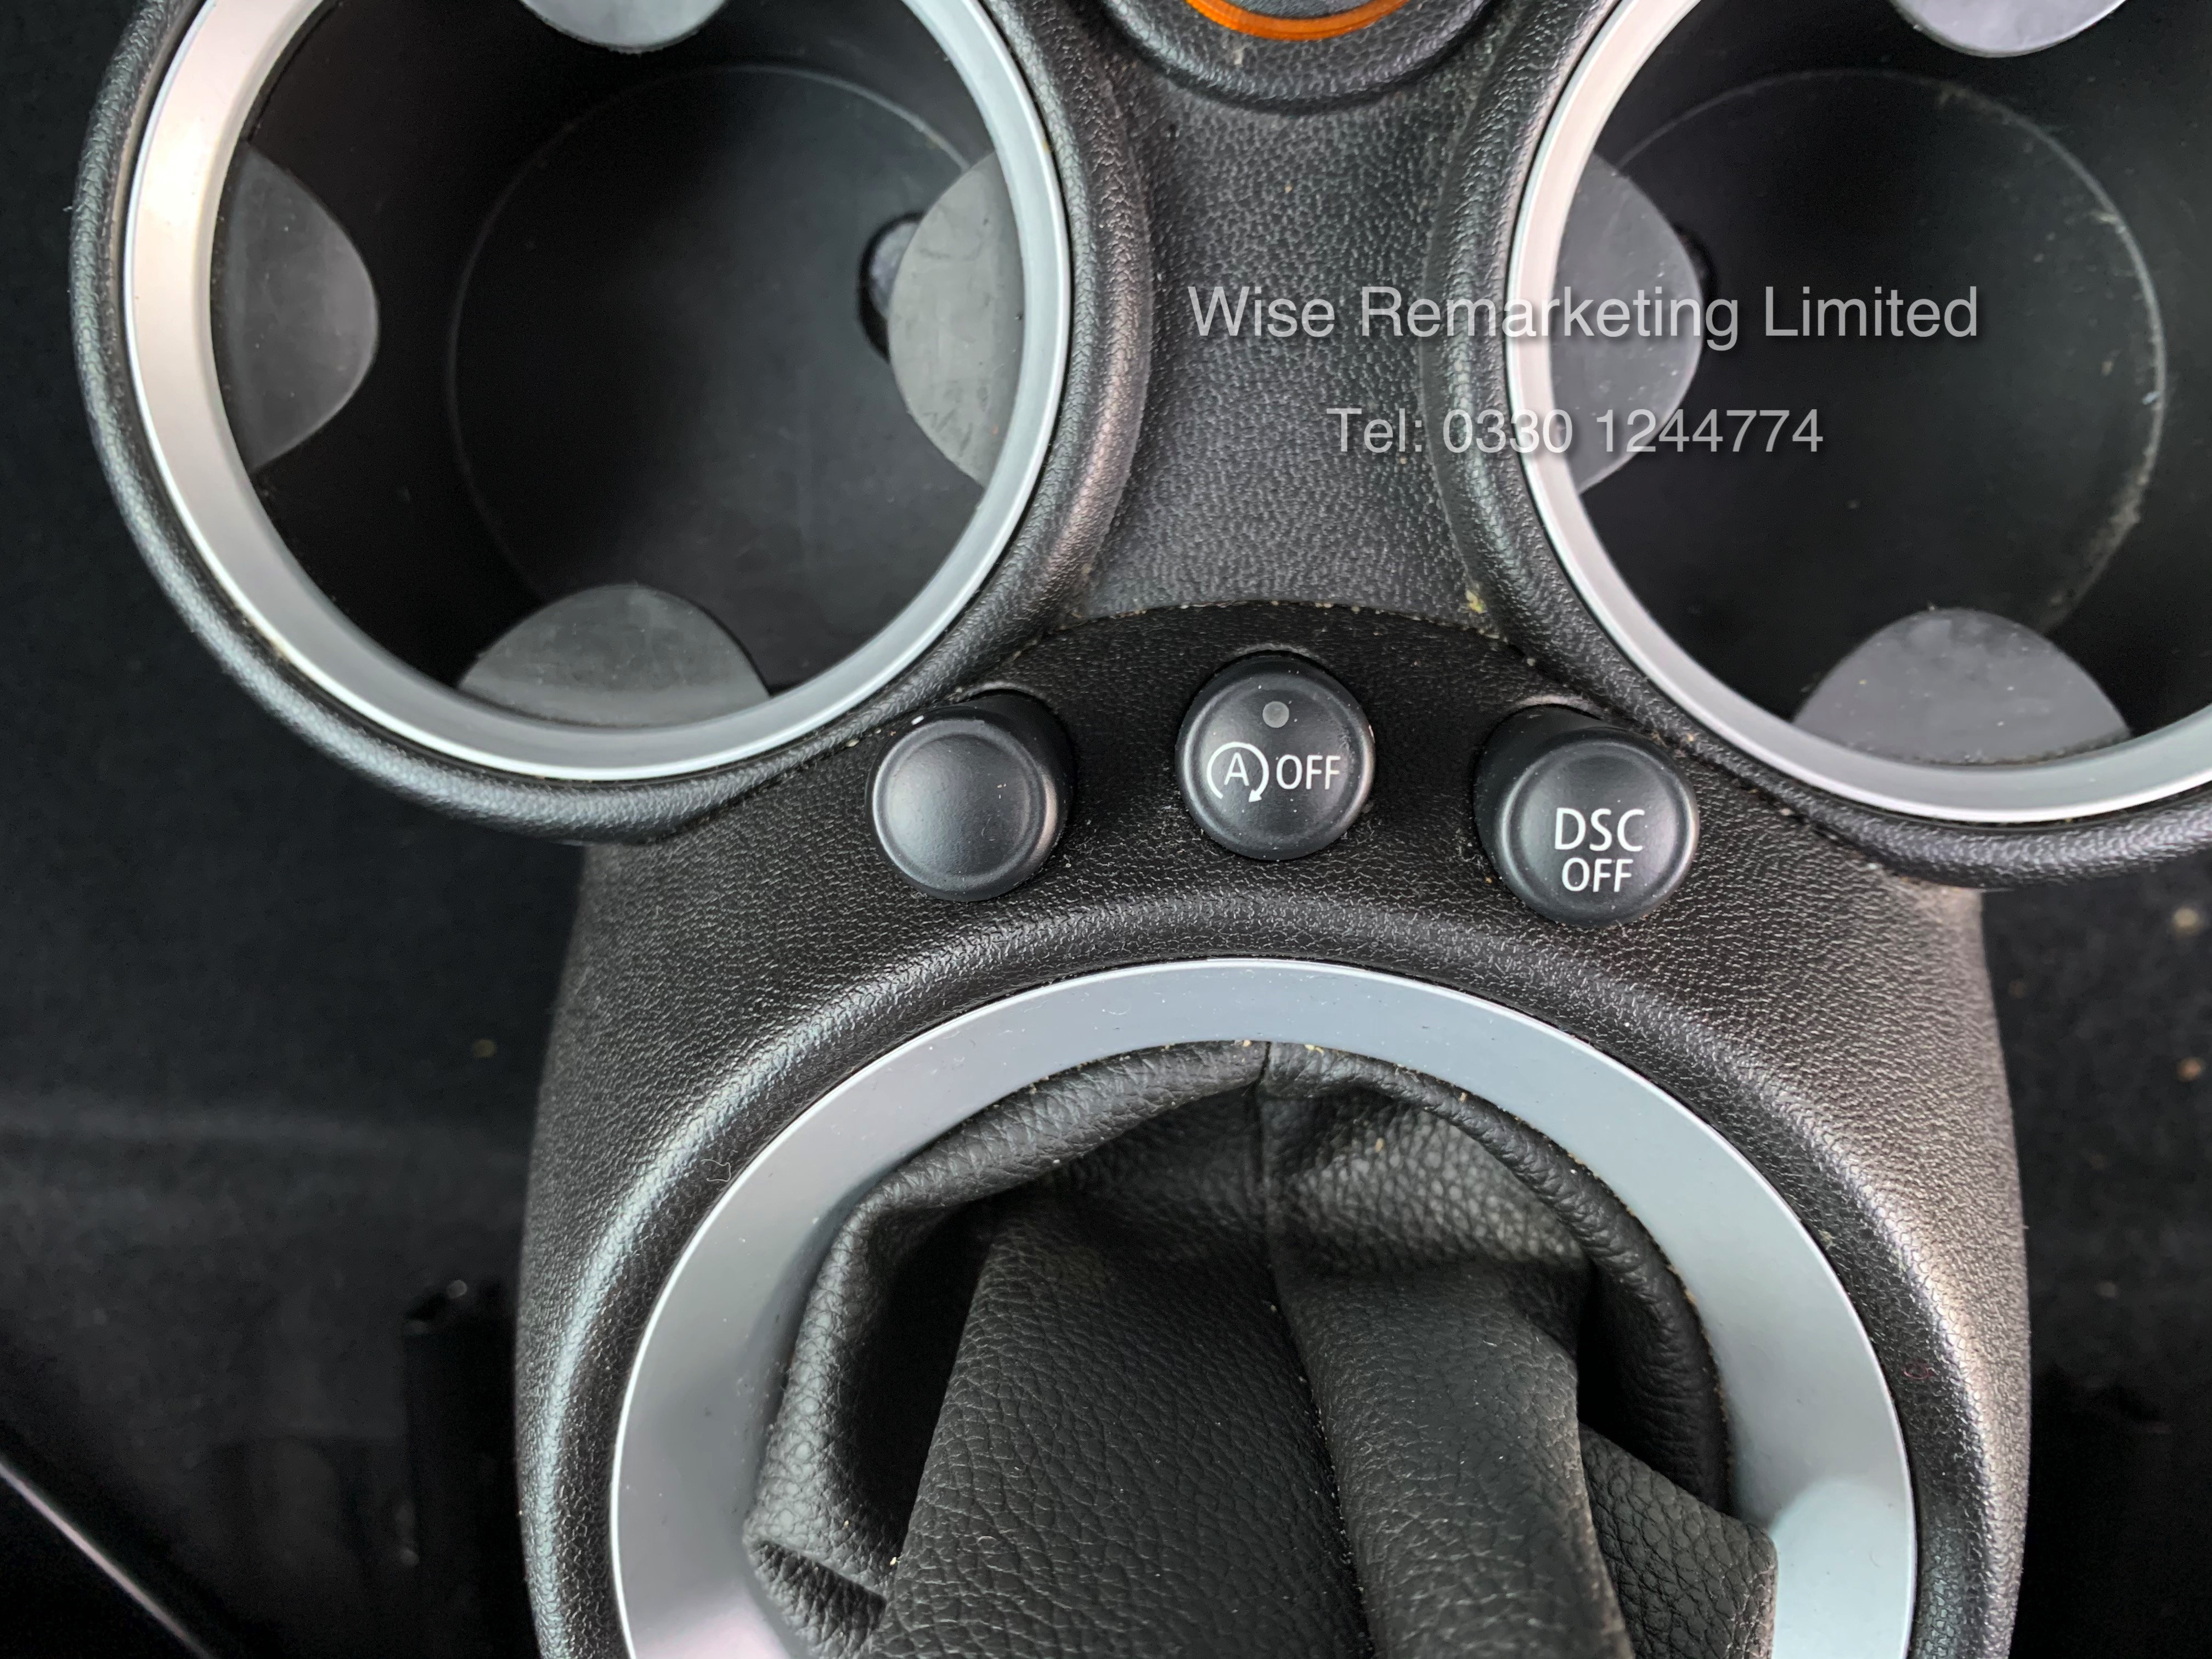 (RESERVE MET) Mini One Graphite 1.4 Petrol - 2010 Model - Service History - 6 Speed - Air Con - - Image 17 of 19